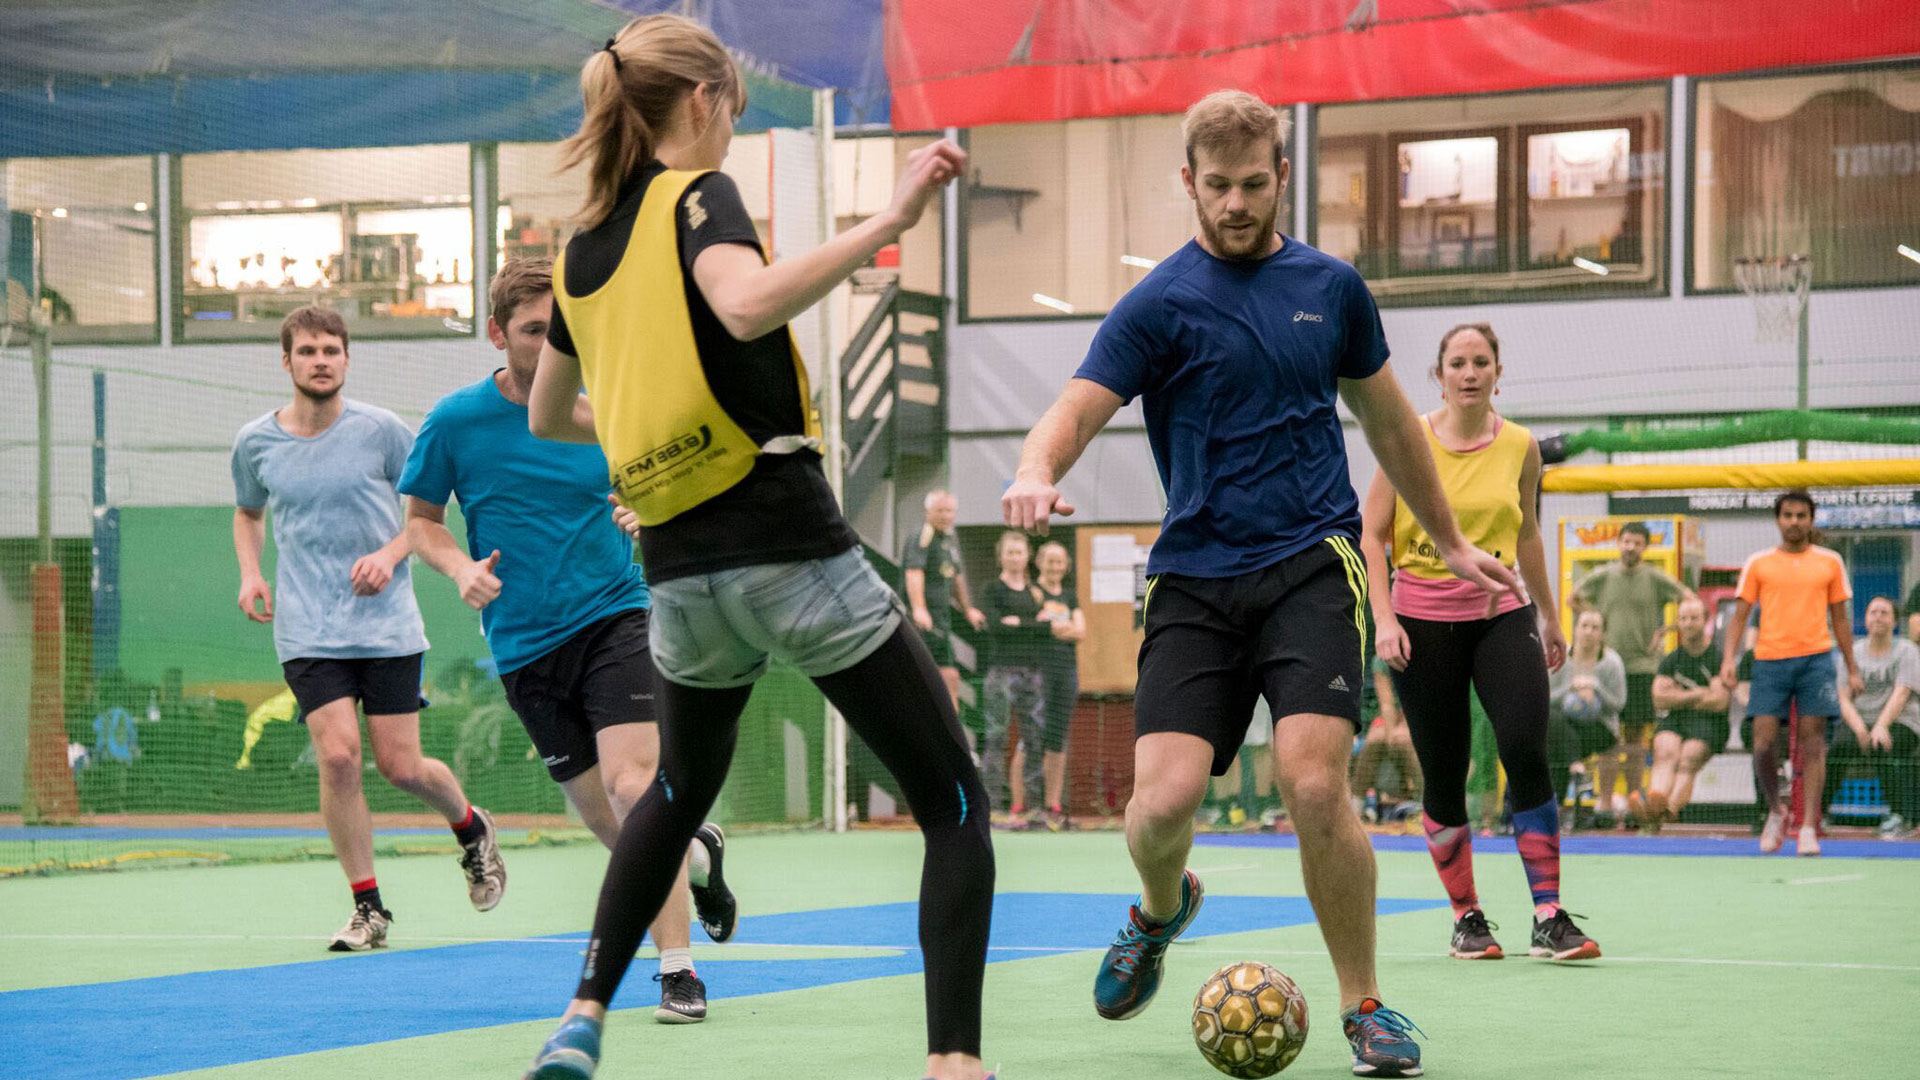 Vanessa and George face off in staff versus student soccer (2017)